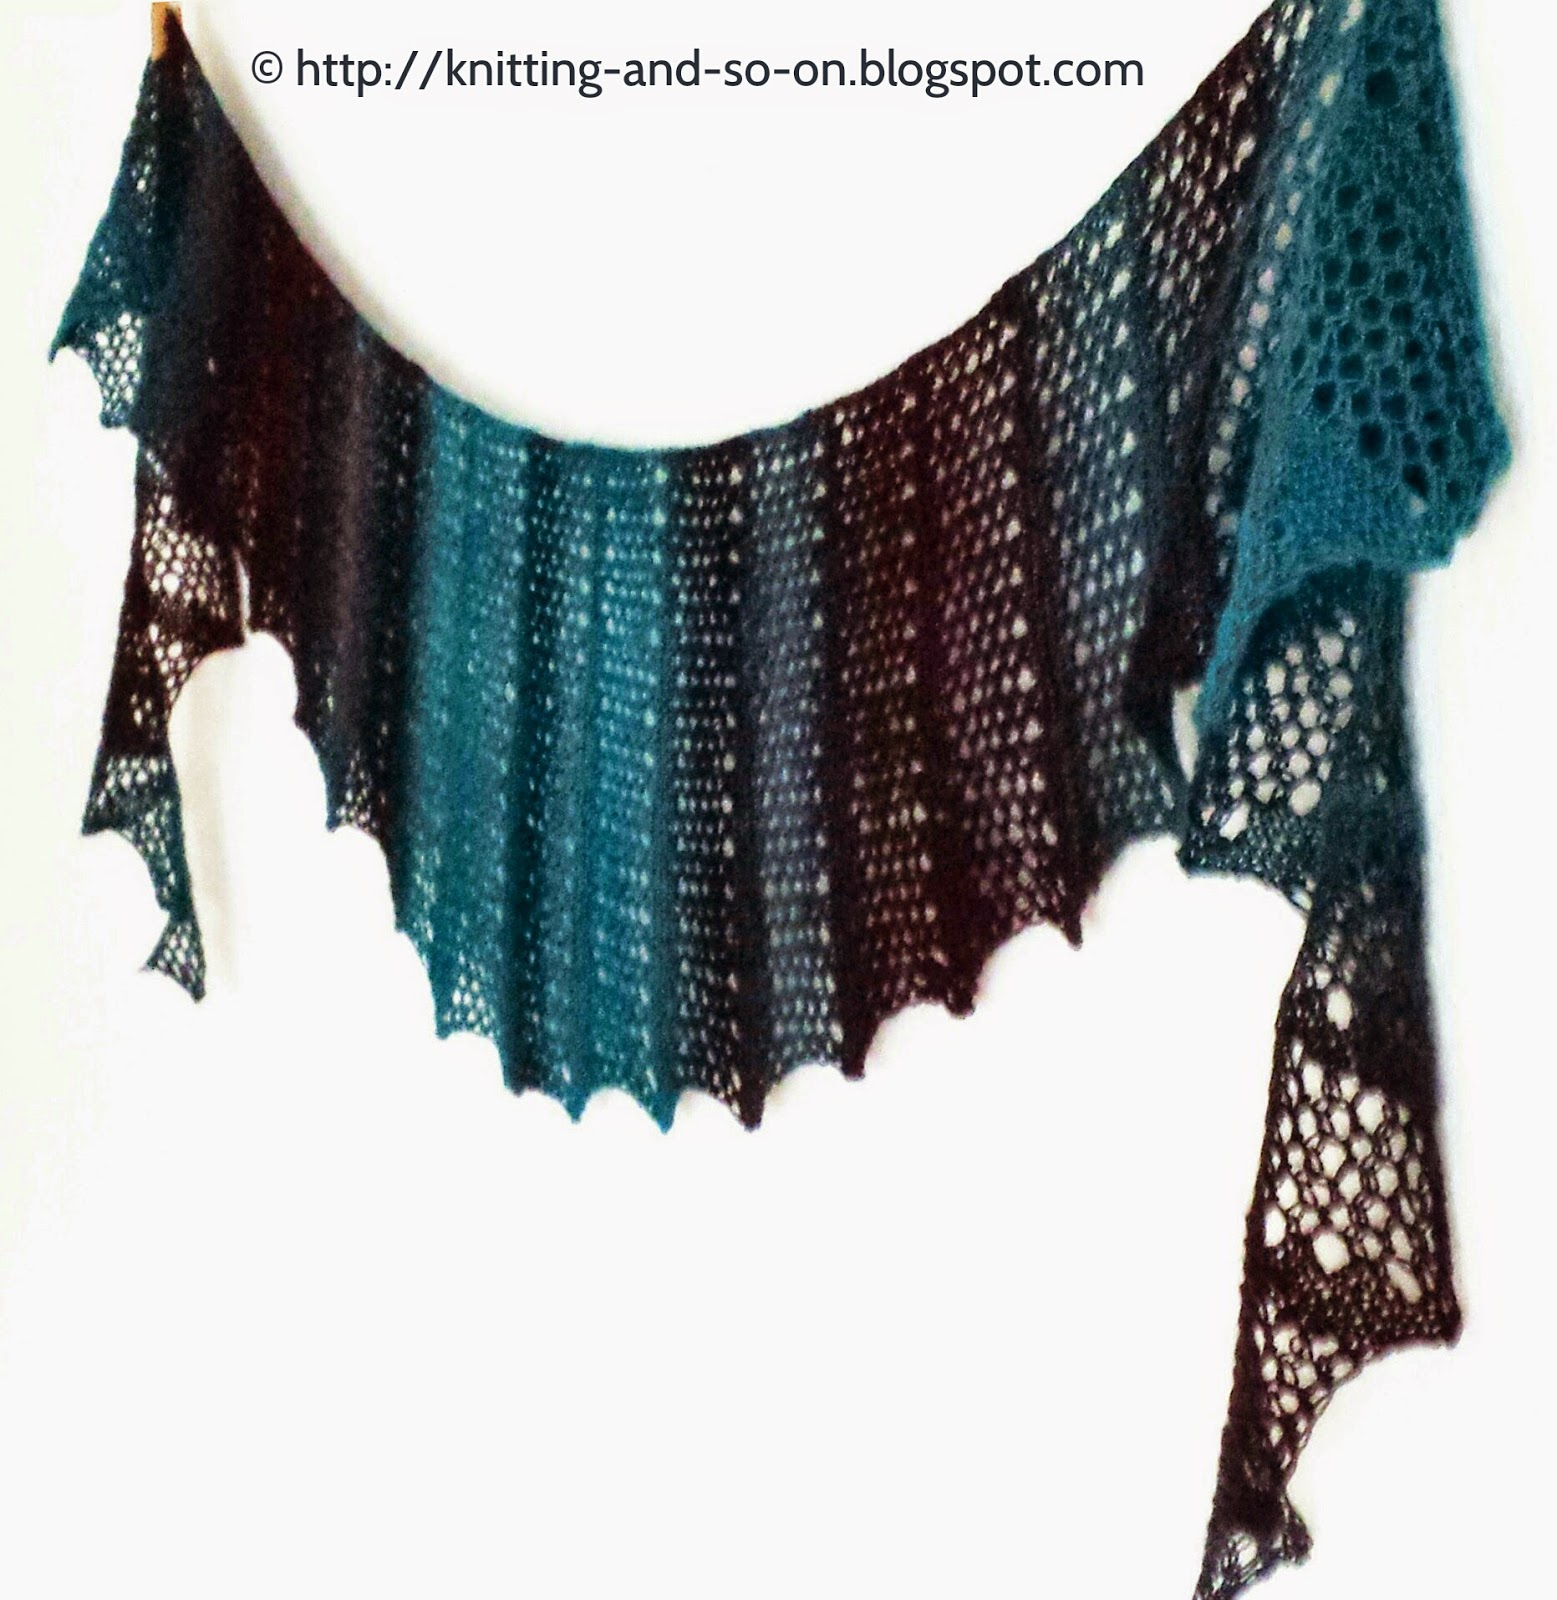 Knitting Patterns Free Scarves Lace : Knitting and so on: Seifenblasen Lace Scarf